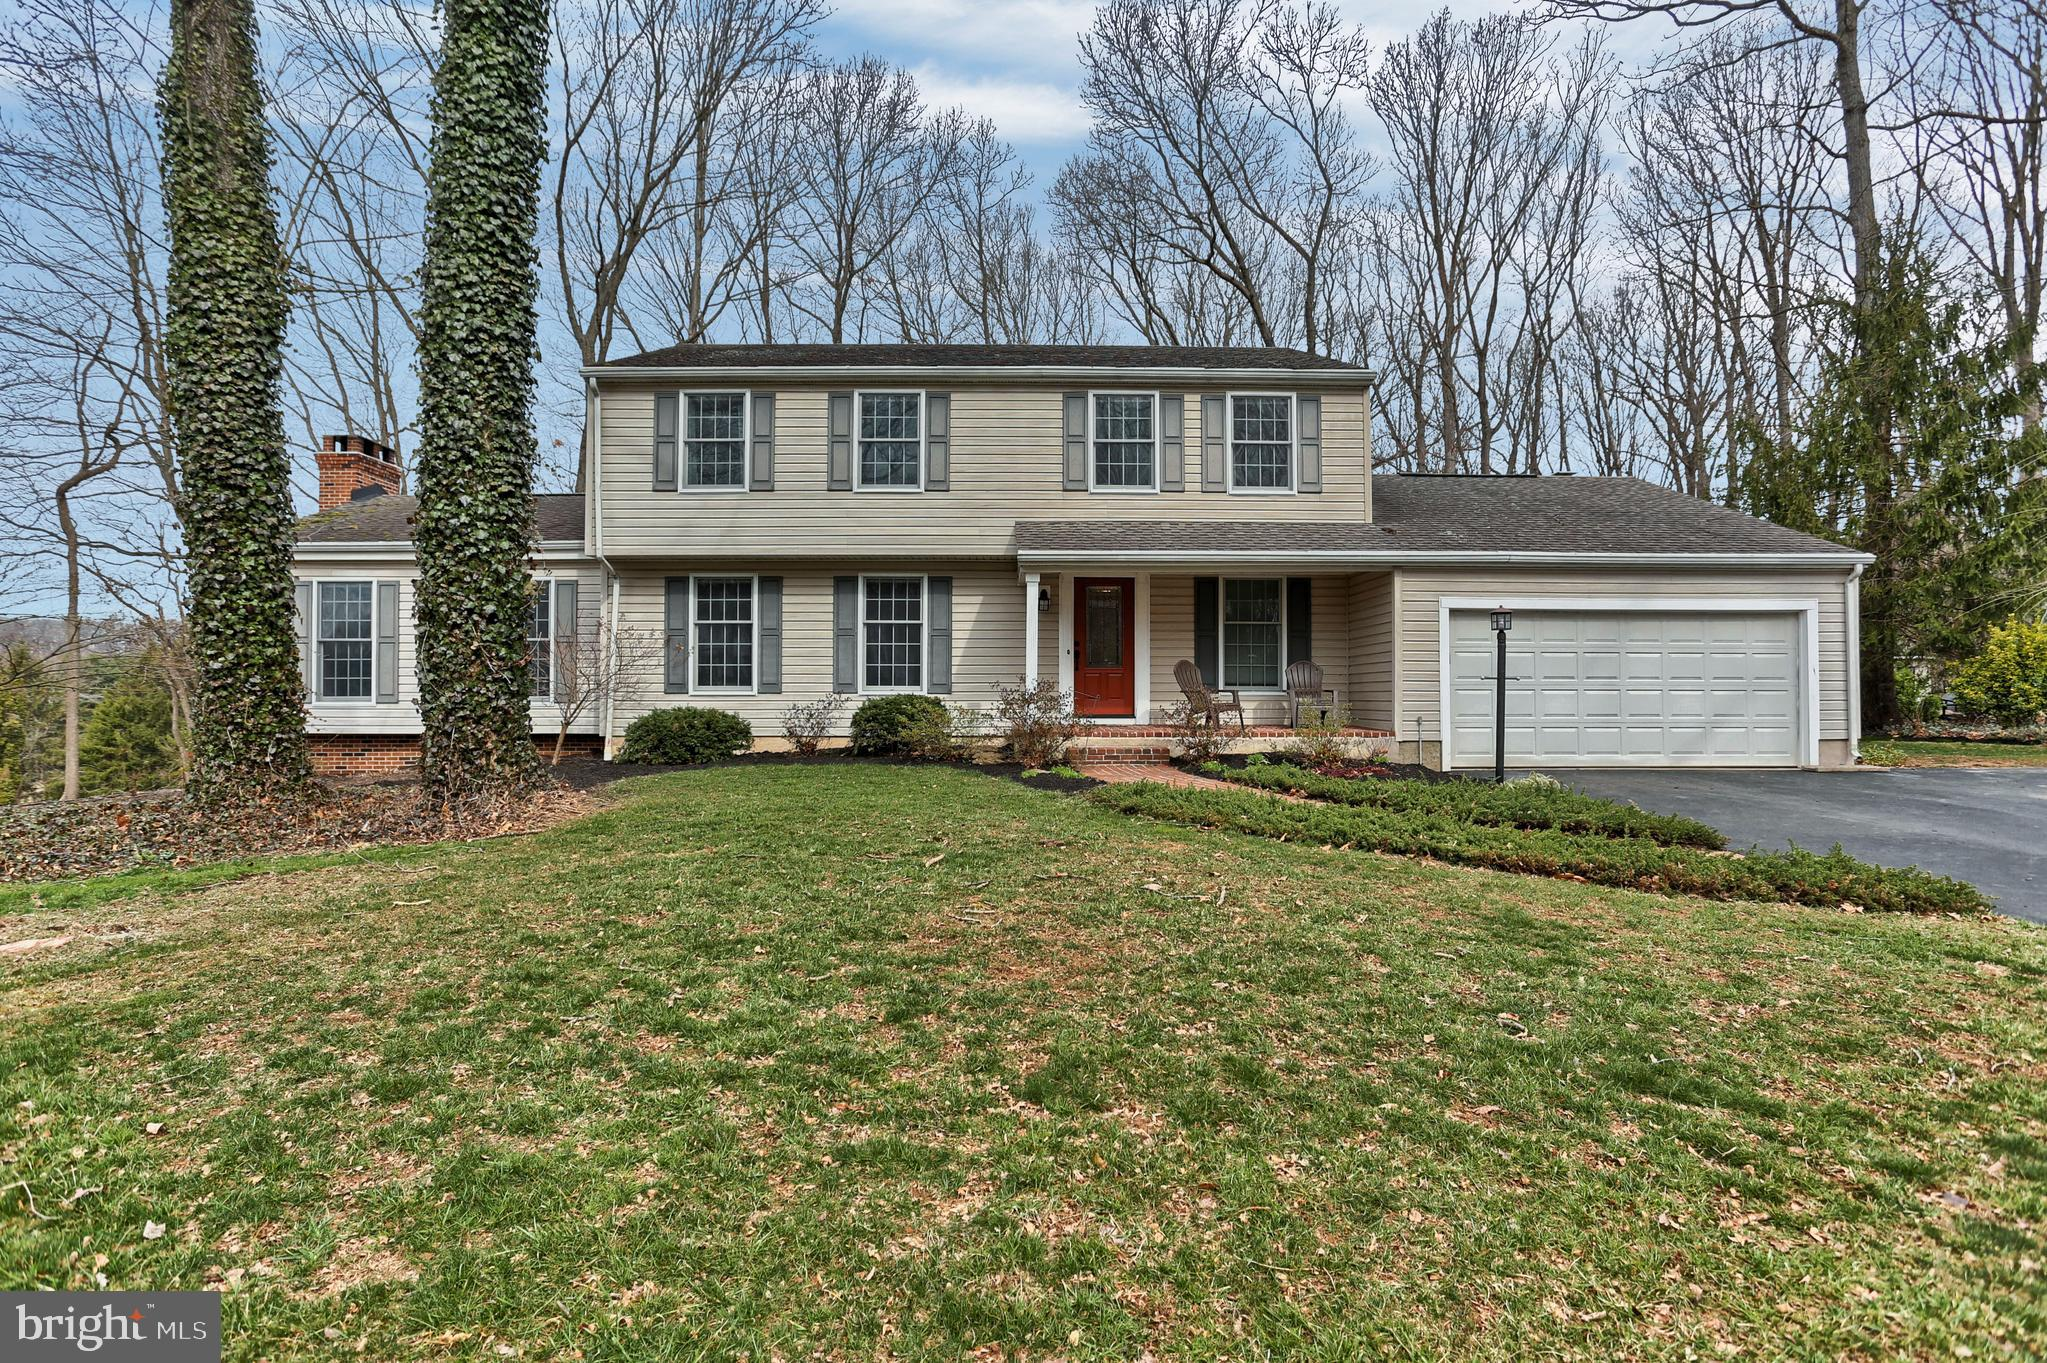 10 LONG QUARTER ROAD, NEW FREEDOM, PA 17349